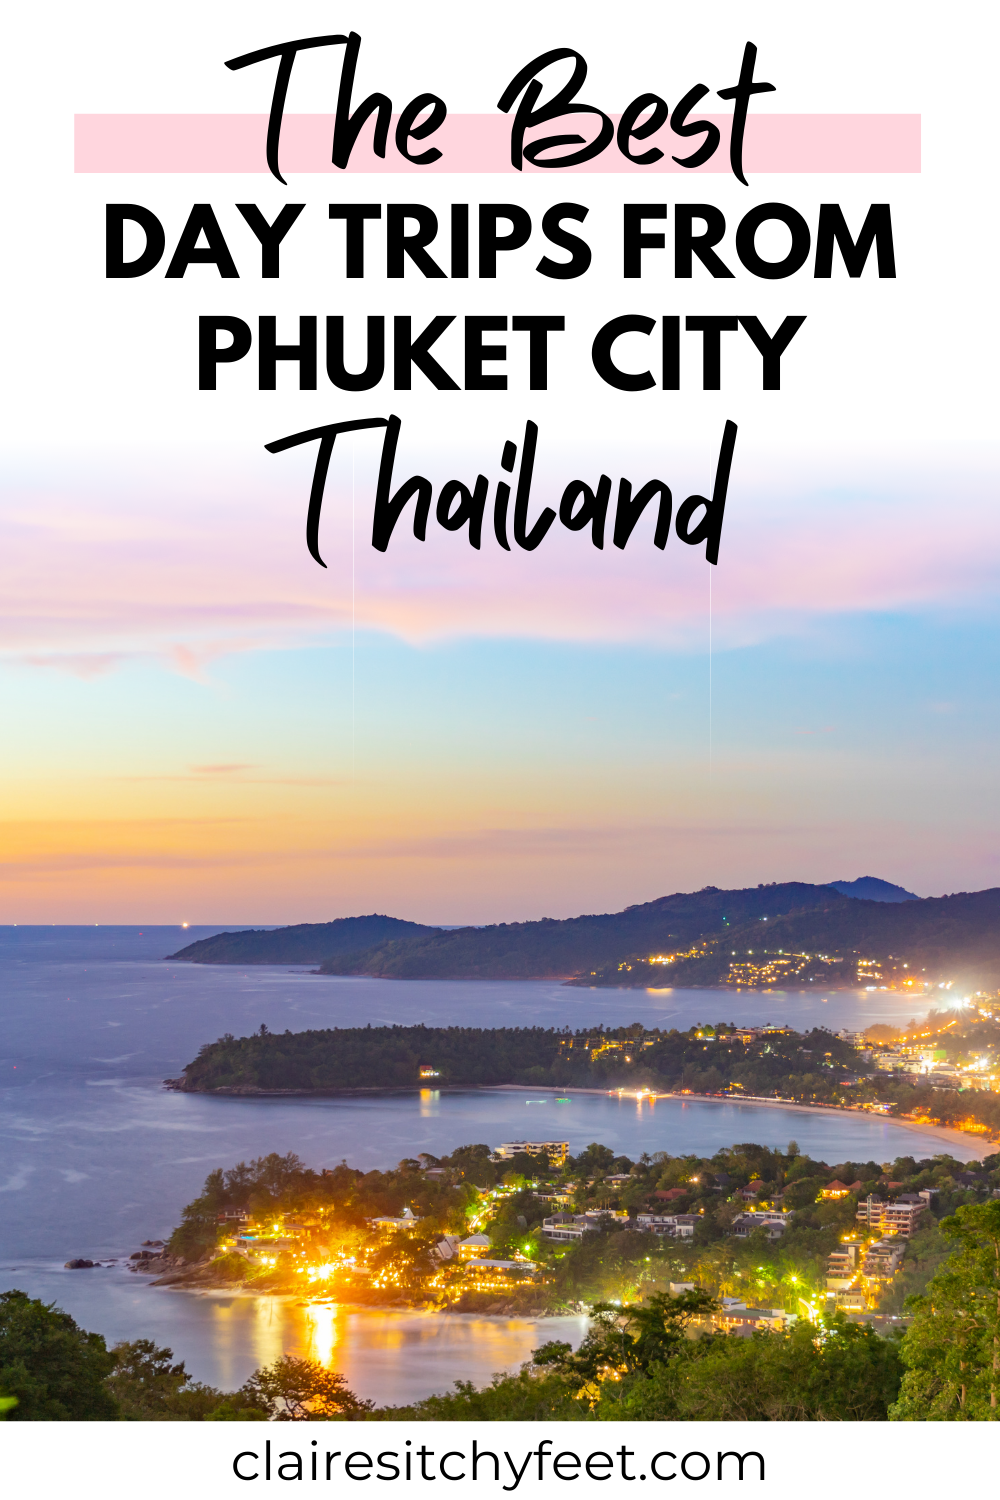 Best Day Trips from Phuket City